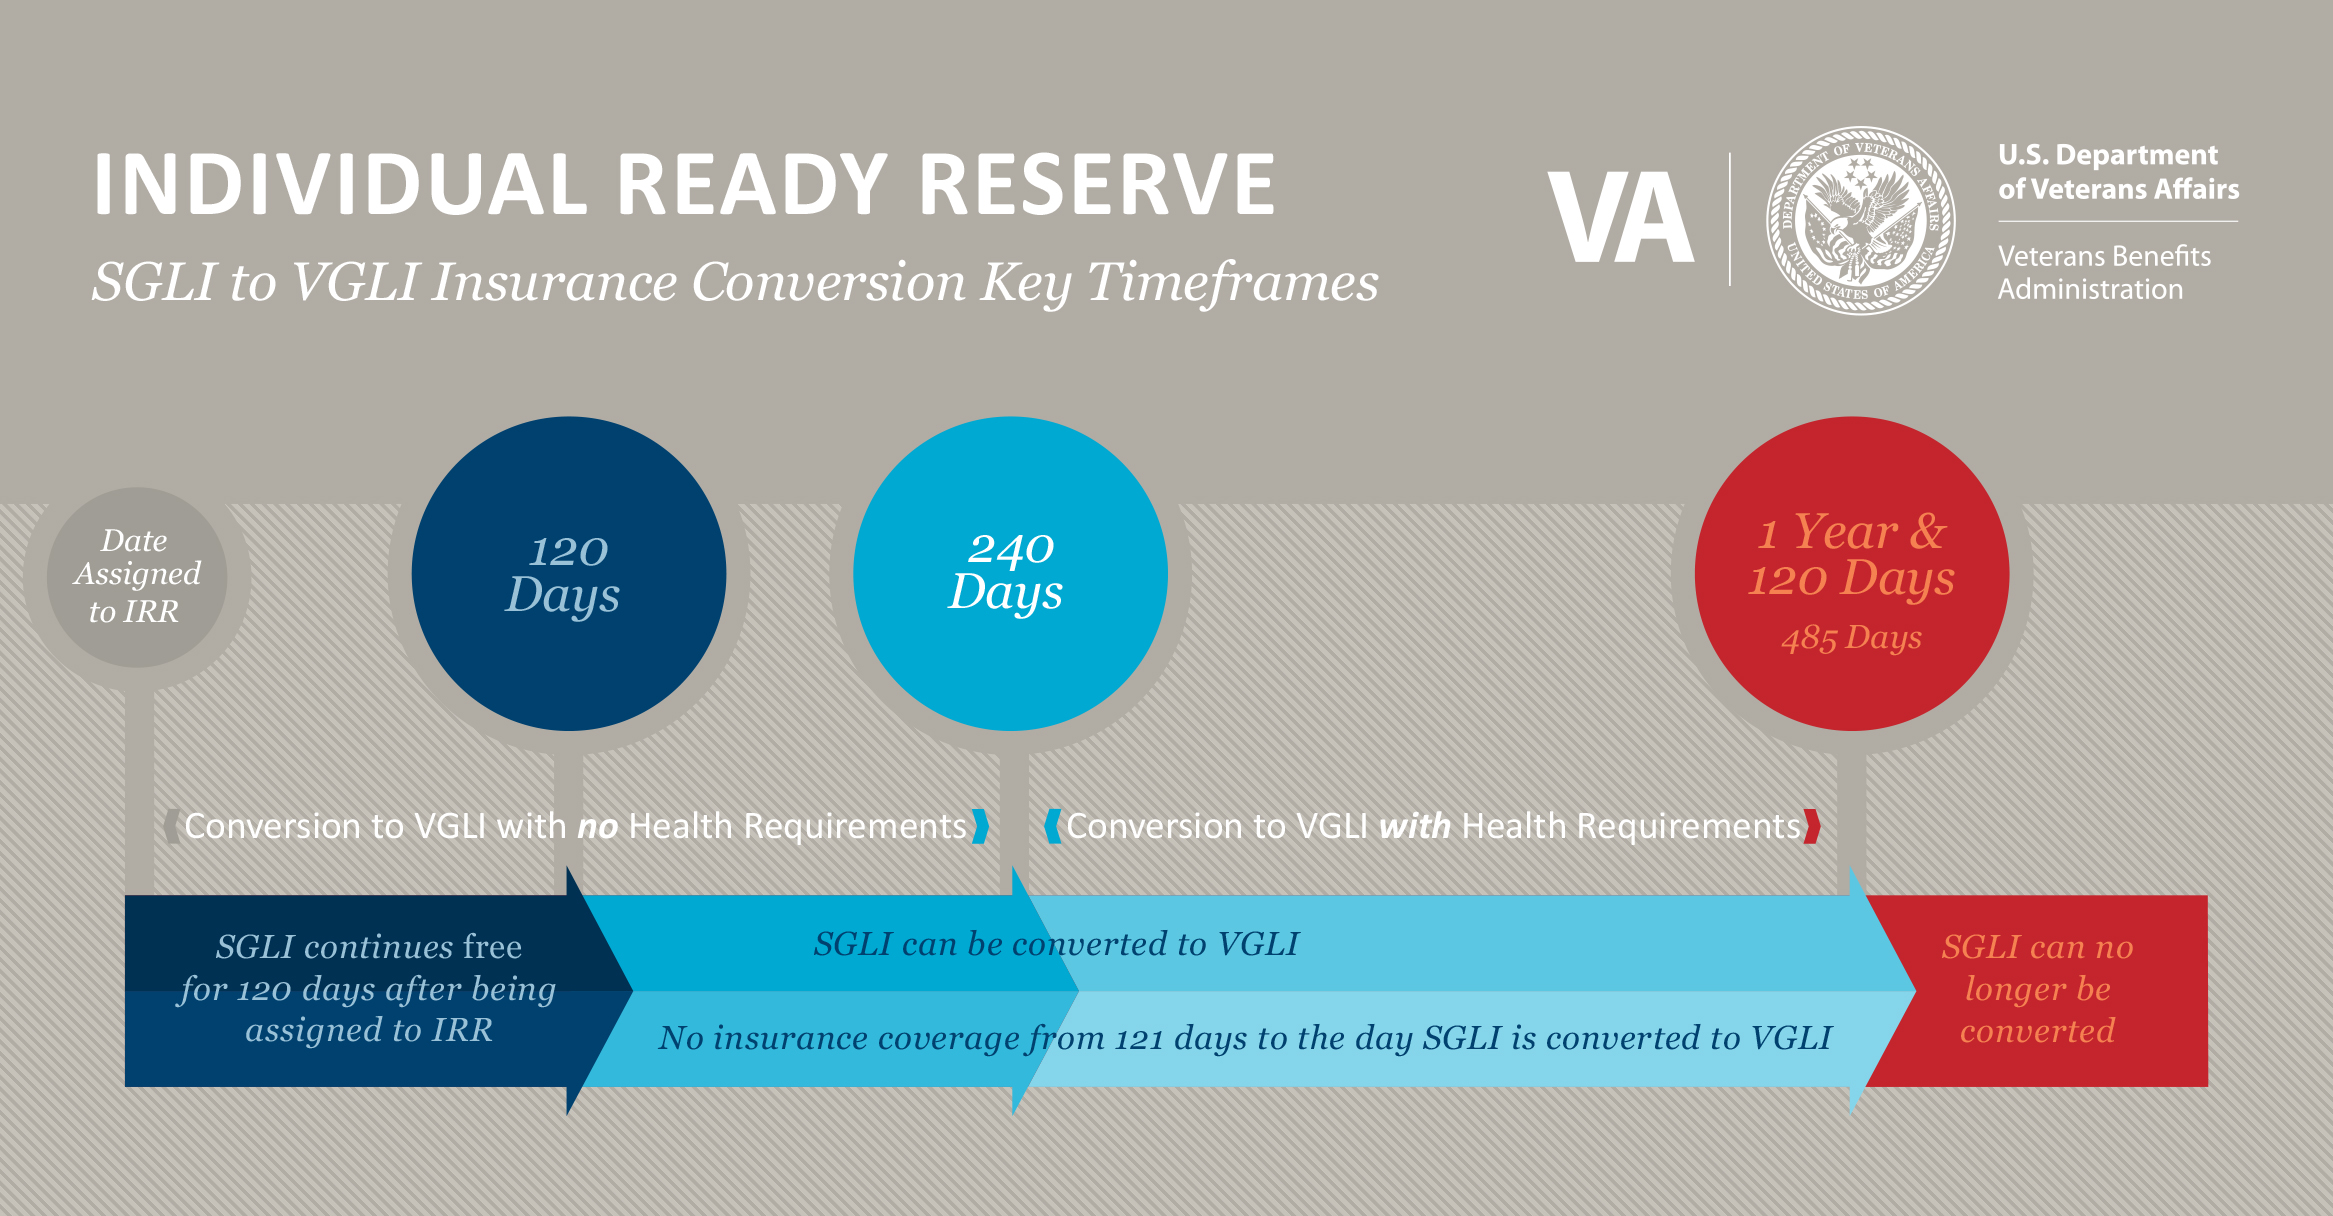 Individual Ready Reserve. SGLI to VGLI Insurance Conversion Key Timeframes. SGLI continues free for 120 days after being assigned to IRR. SGLI can be converted to VGLI without health requirements within 240 days from the date you were assigned to IRR. Conversion to VGLI with 1 year and 120 days requires health requirements.